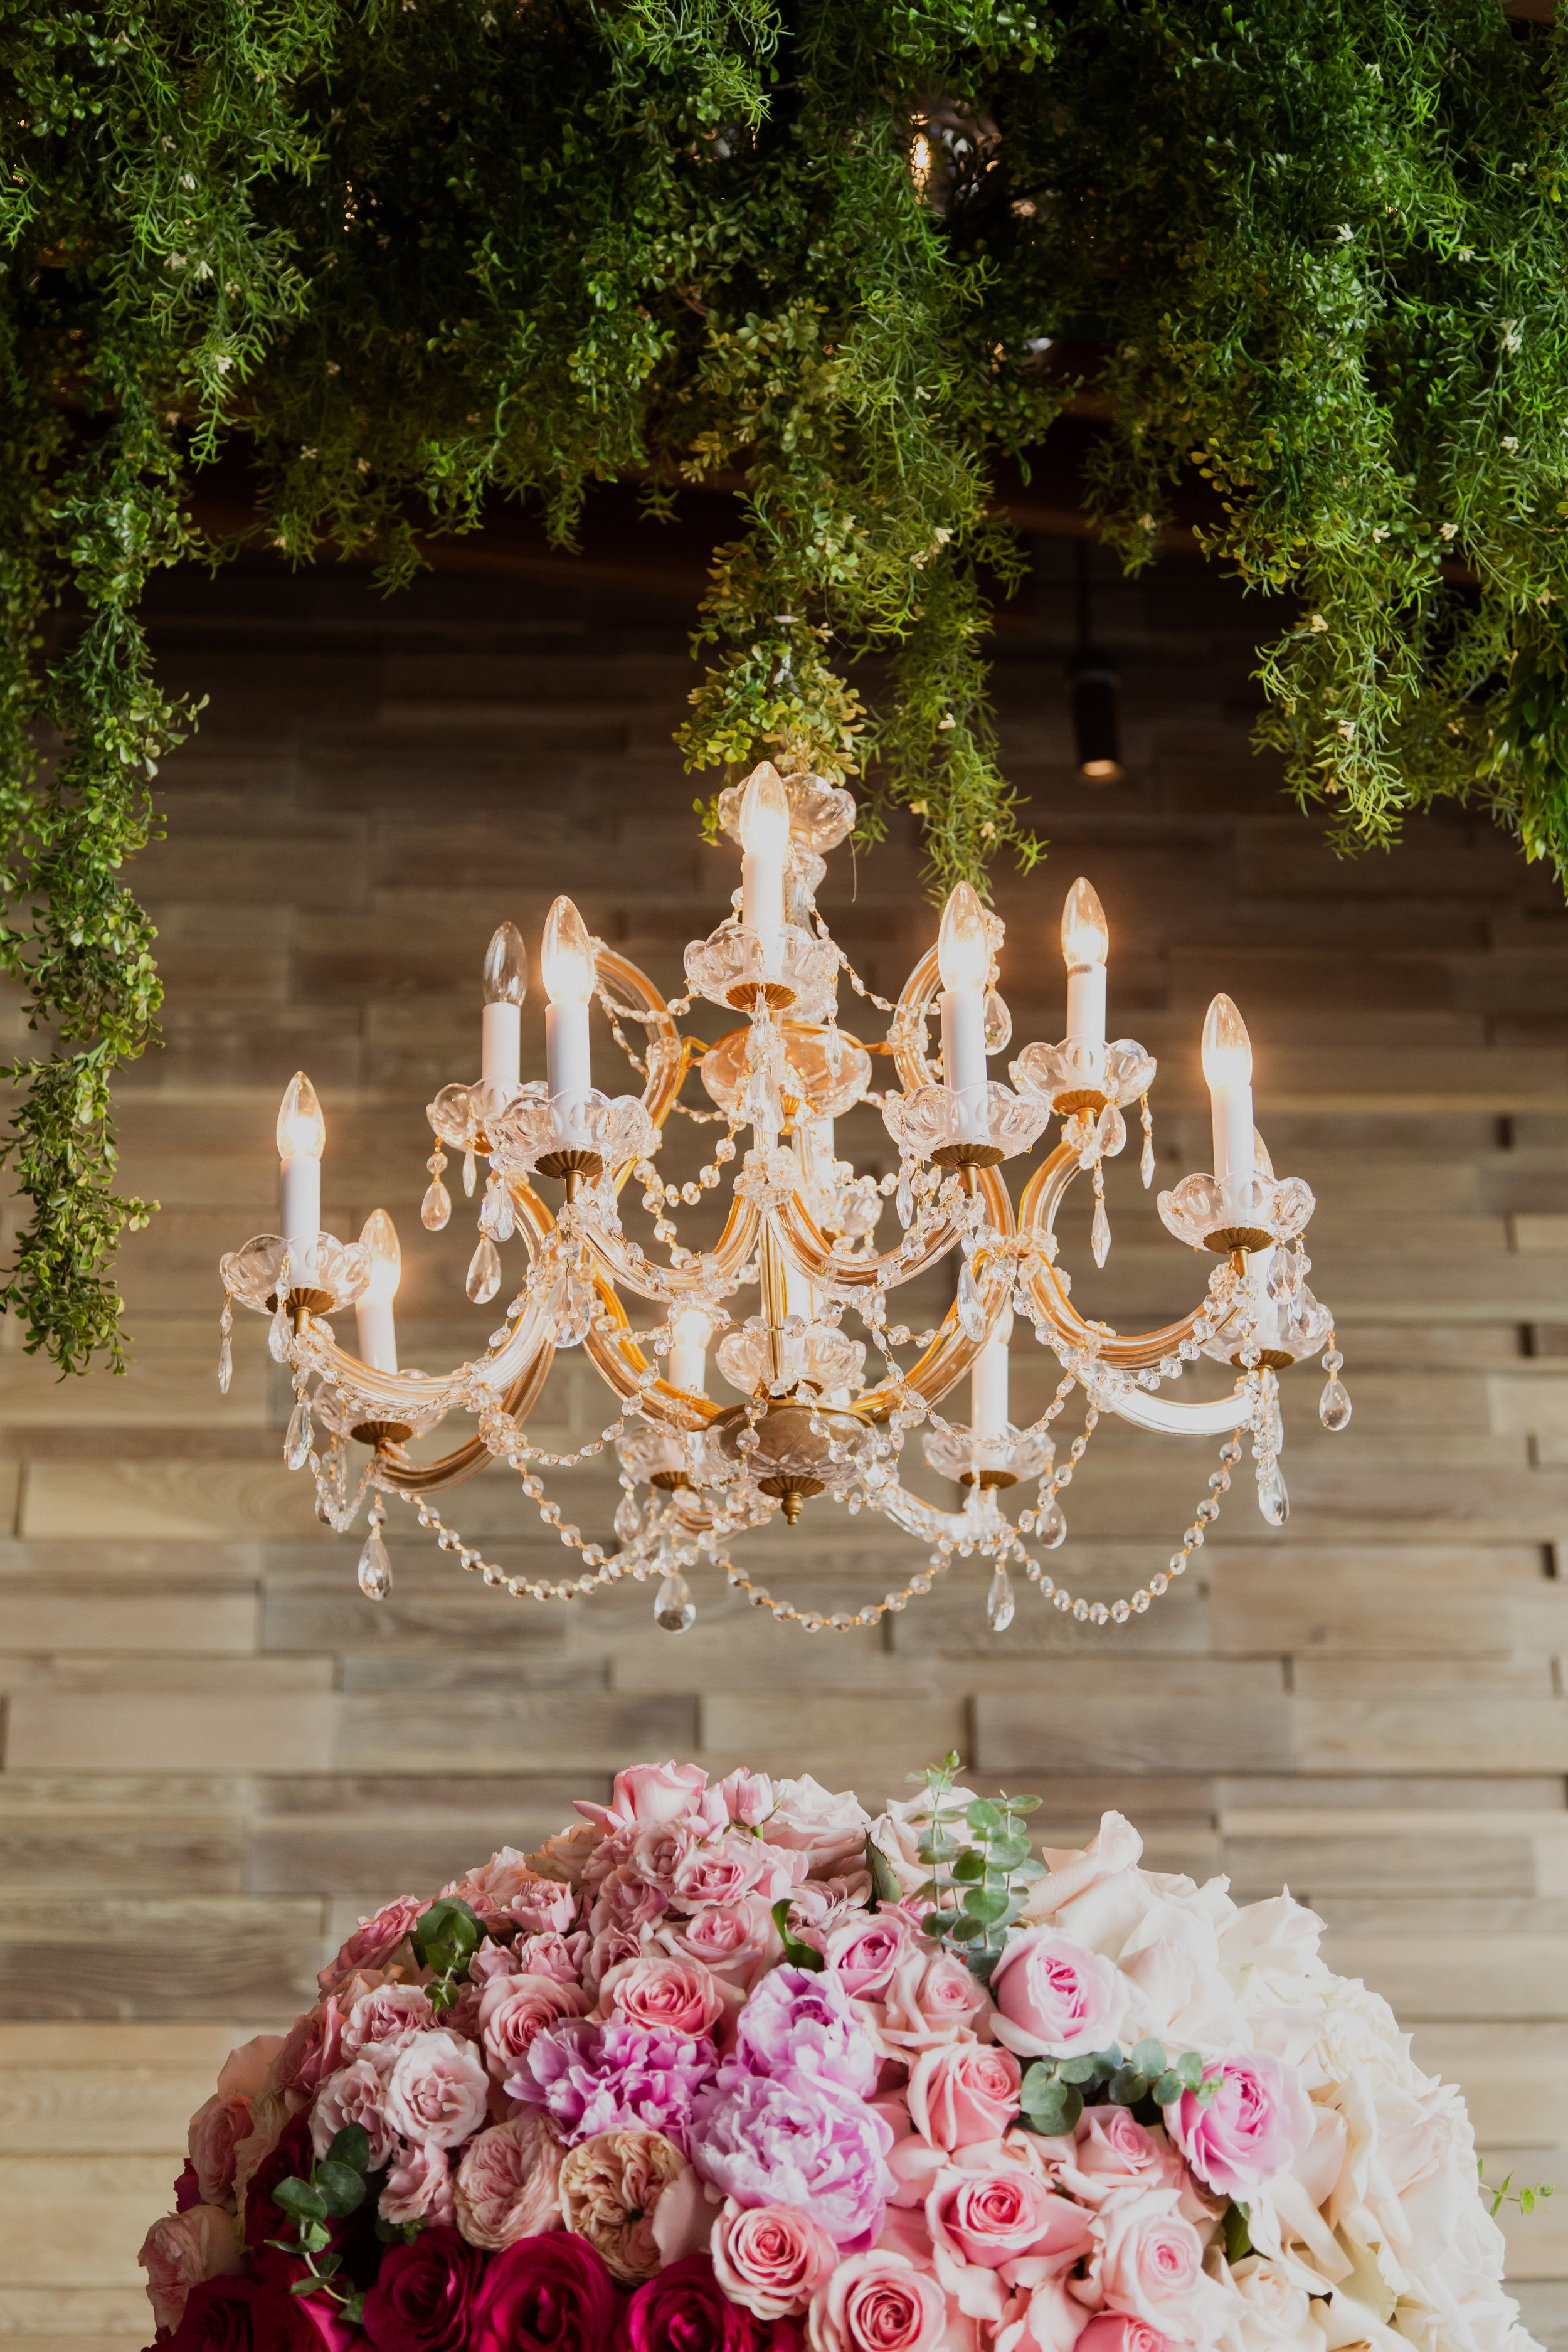 Large gold chandelier over ombre centerpiece. Las Vegas Wedding Planner & Event Designer  Andrea Eppolito Events  · Photography by  Adam Frazier Photo  · Video by  M Place Productions  · Floral & Decor by  DBD Las Vegas  · Venue  ARIA Primrose Ballroom  · Cigar Band by  Royal Cigar Company  and  Jason of Beverly Hills  · Beauty by  Glammed Up Las Vegas  · Dress by  Vera Wang  · Salon  Couture Bride Las Vegas  · Shoes  Bella Belle Shoes  · Bride  Katrina May Armenta  · Groom  Lucas Cuevas